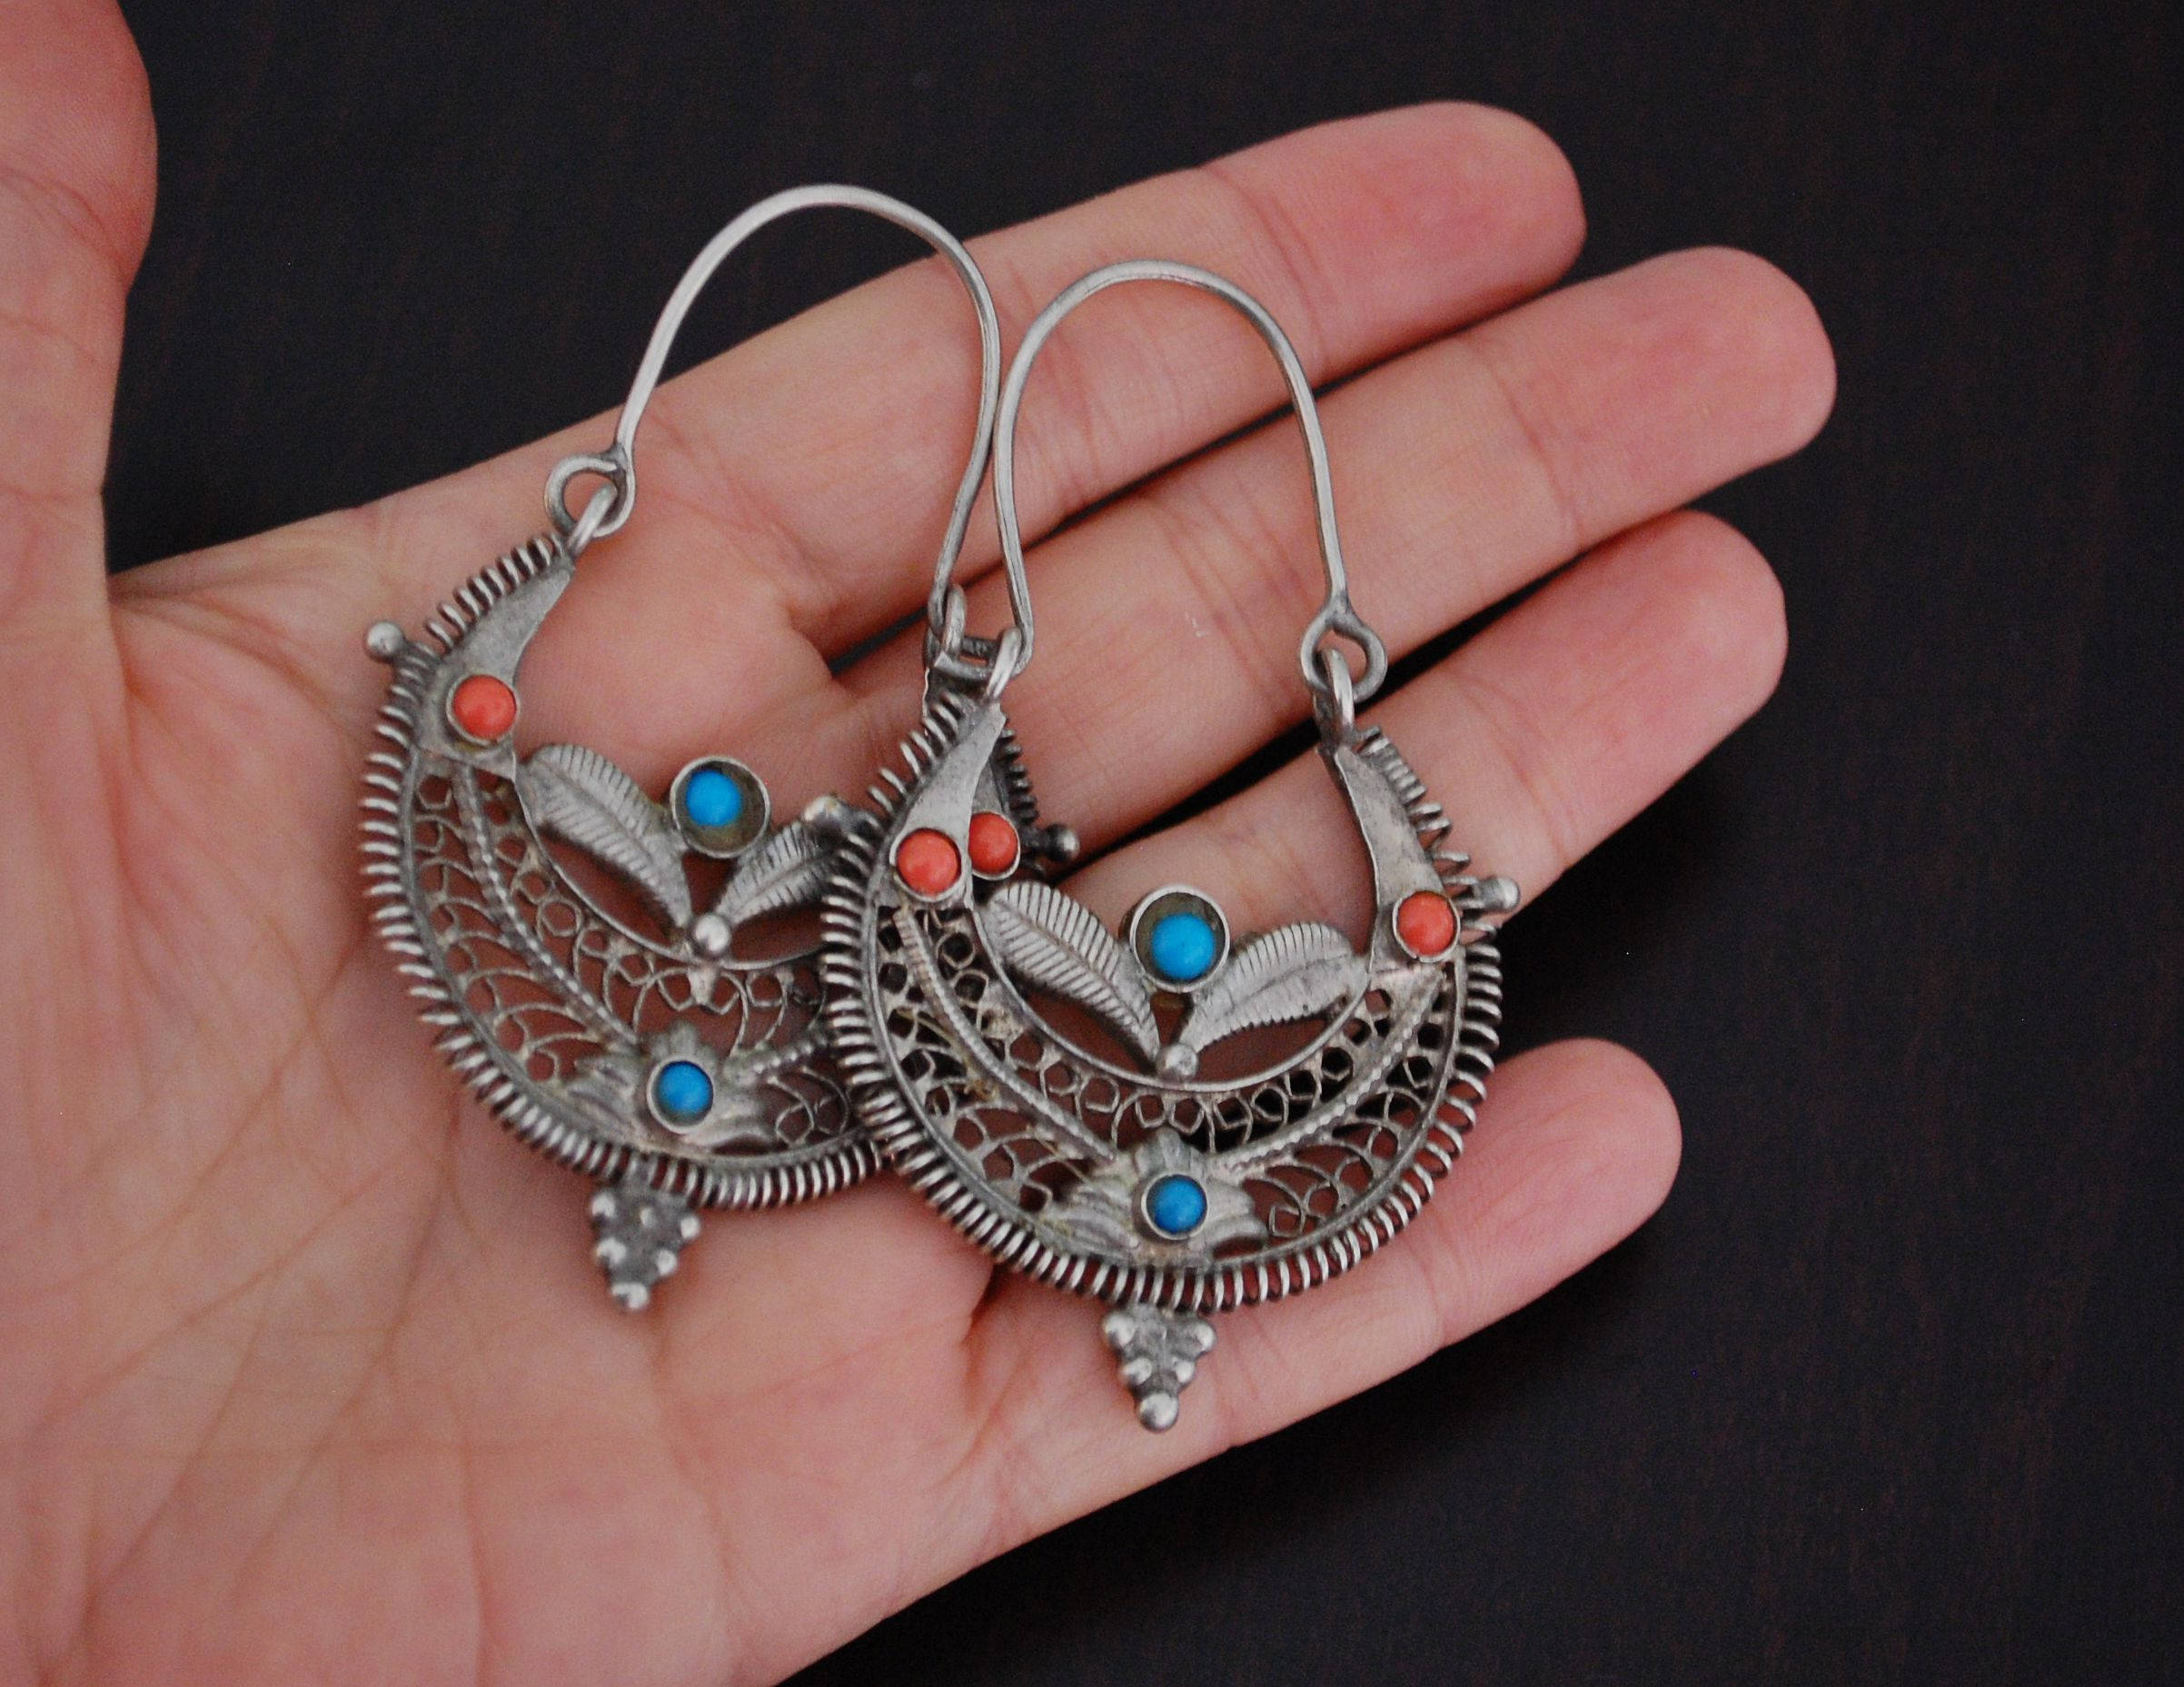 Big Afghani Tribal Hoop Earrings with Colored Glass - Tribal Hoop Earrings - Afghani Earrings - Ethnic Hoop Earrings - Afghani Jewelry